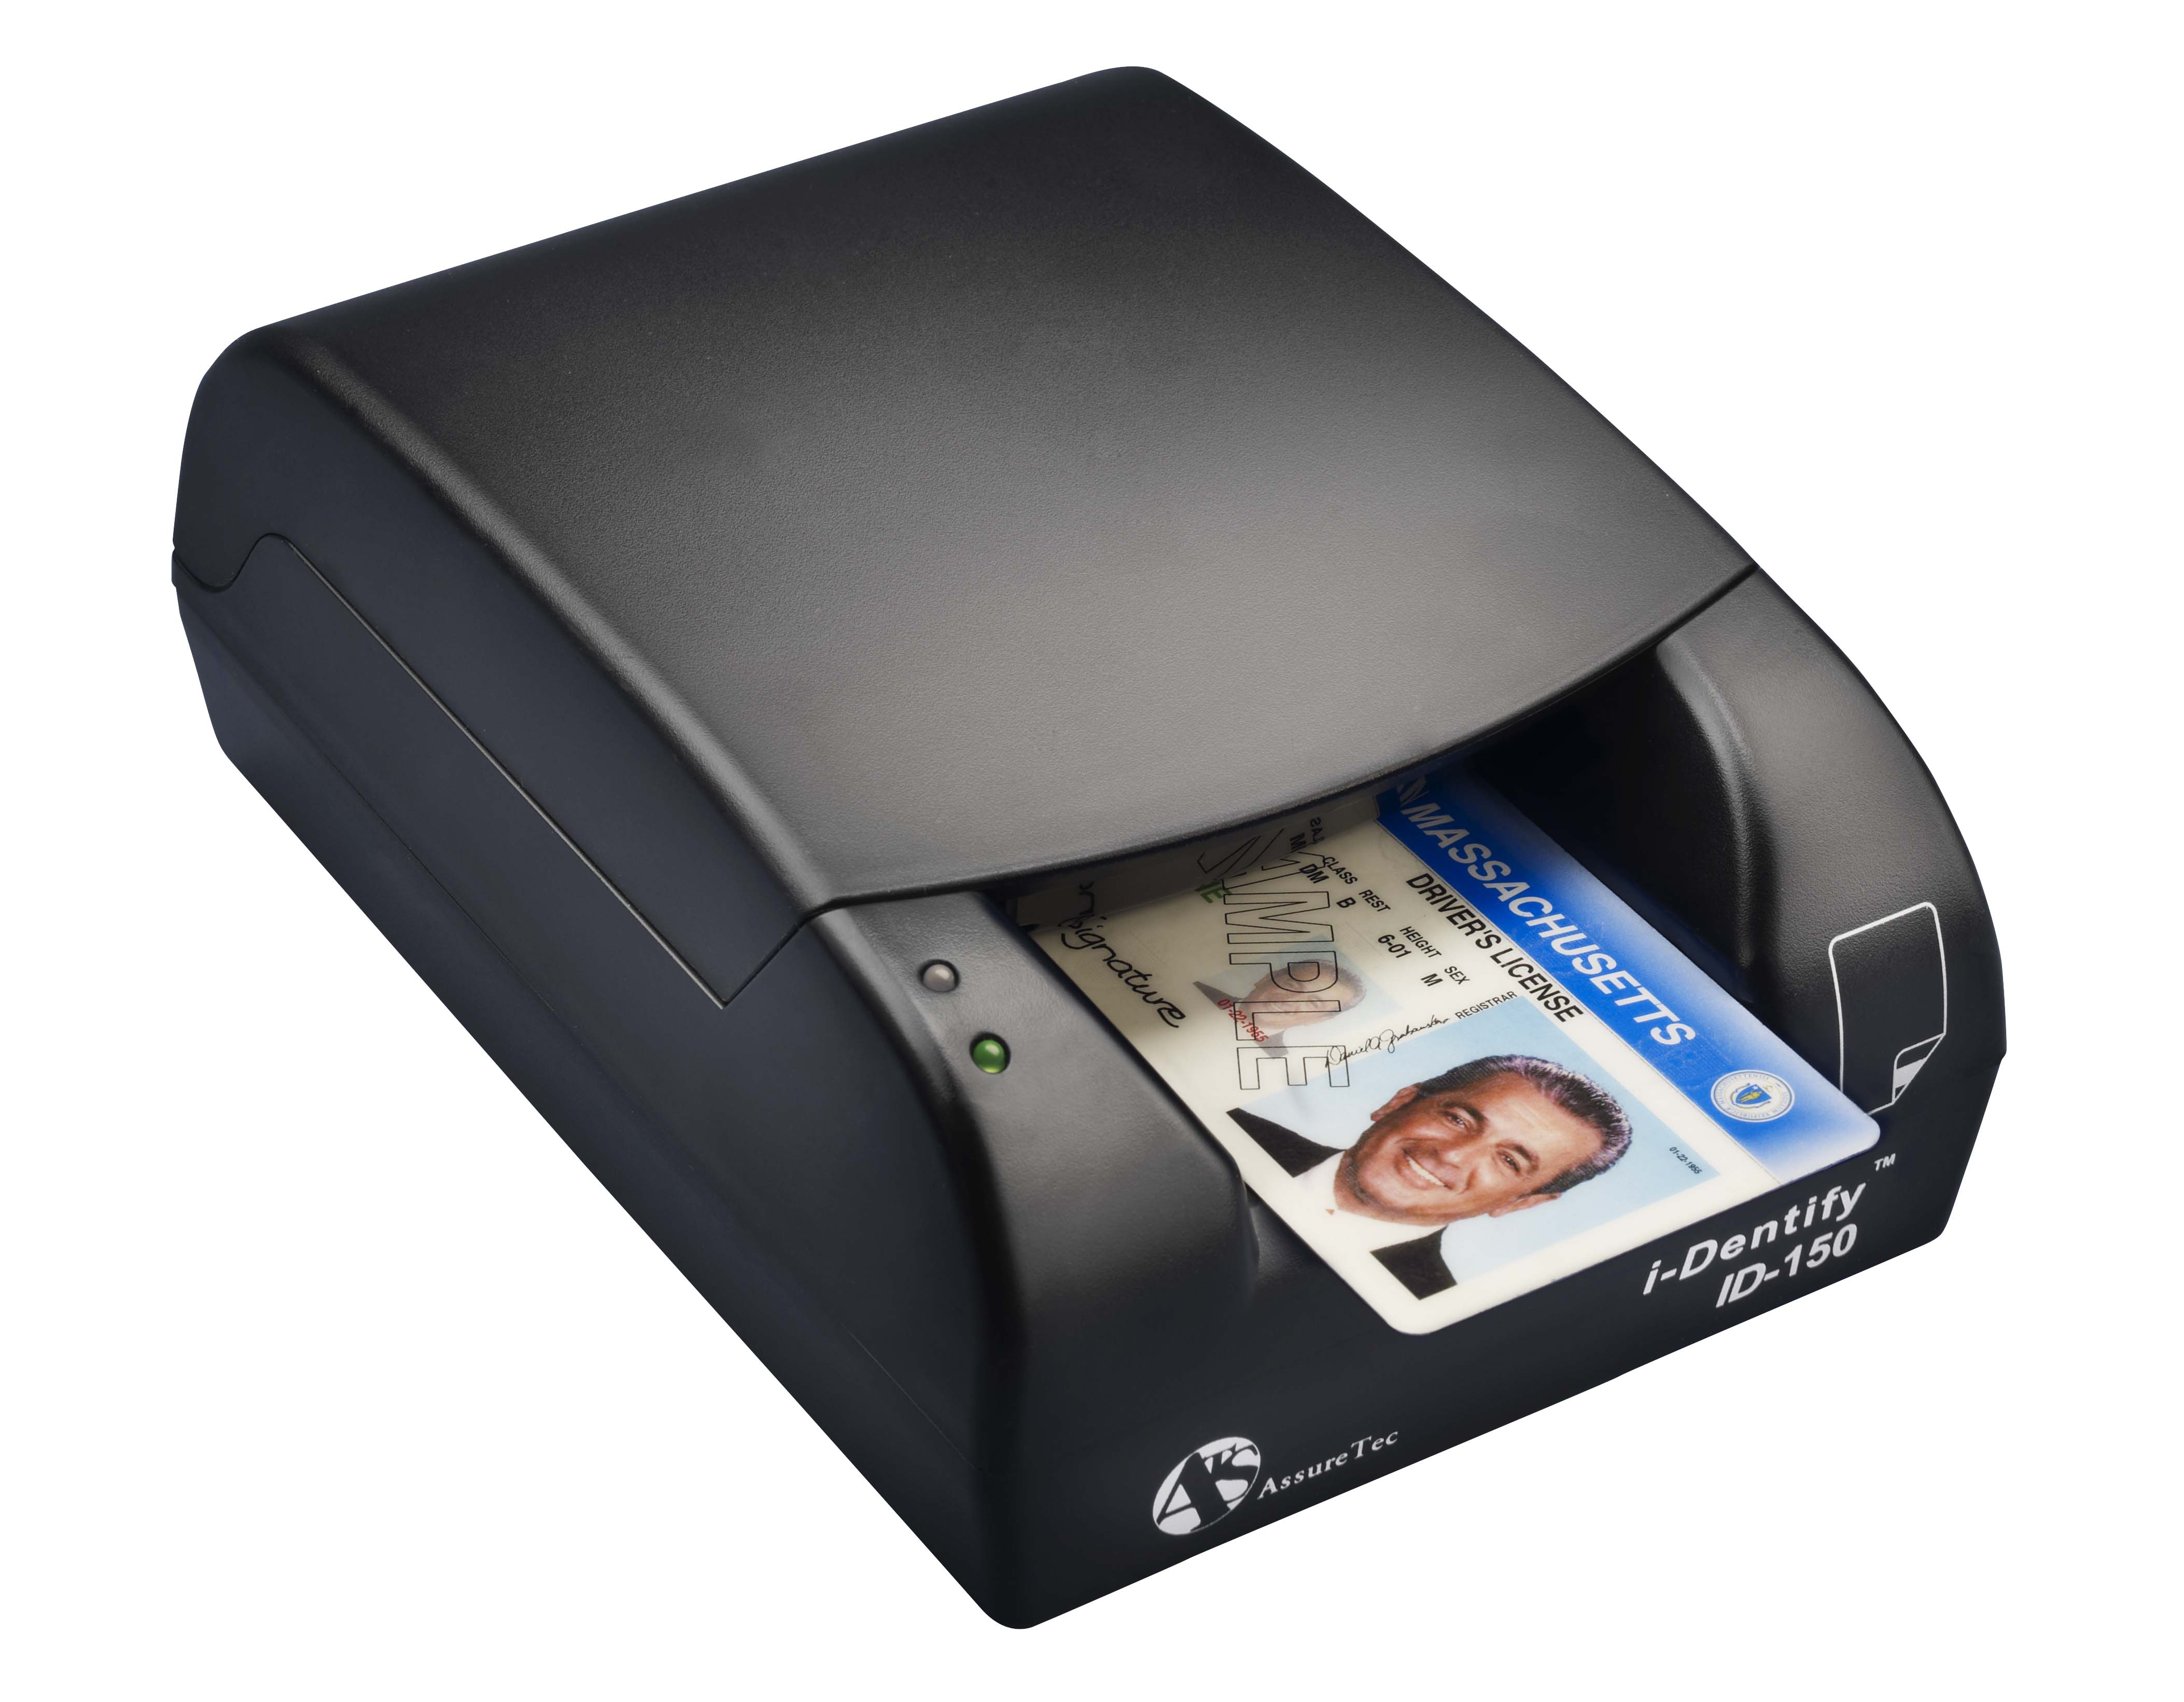 with AssureTec to provide it's powerful line of ID Scanner